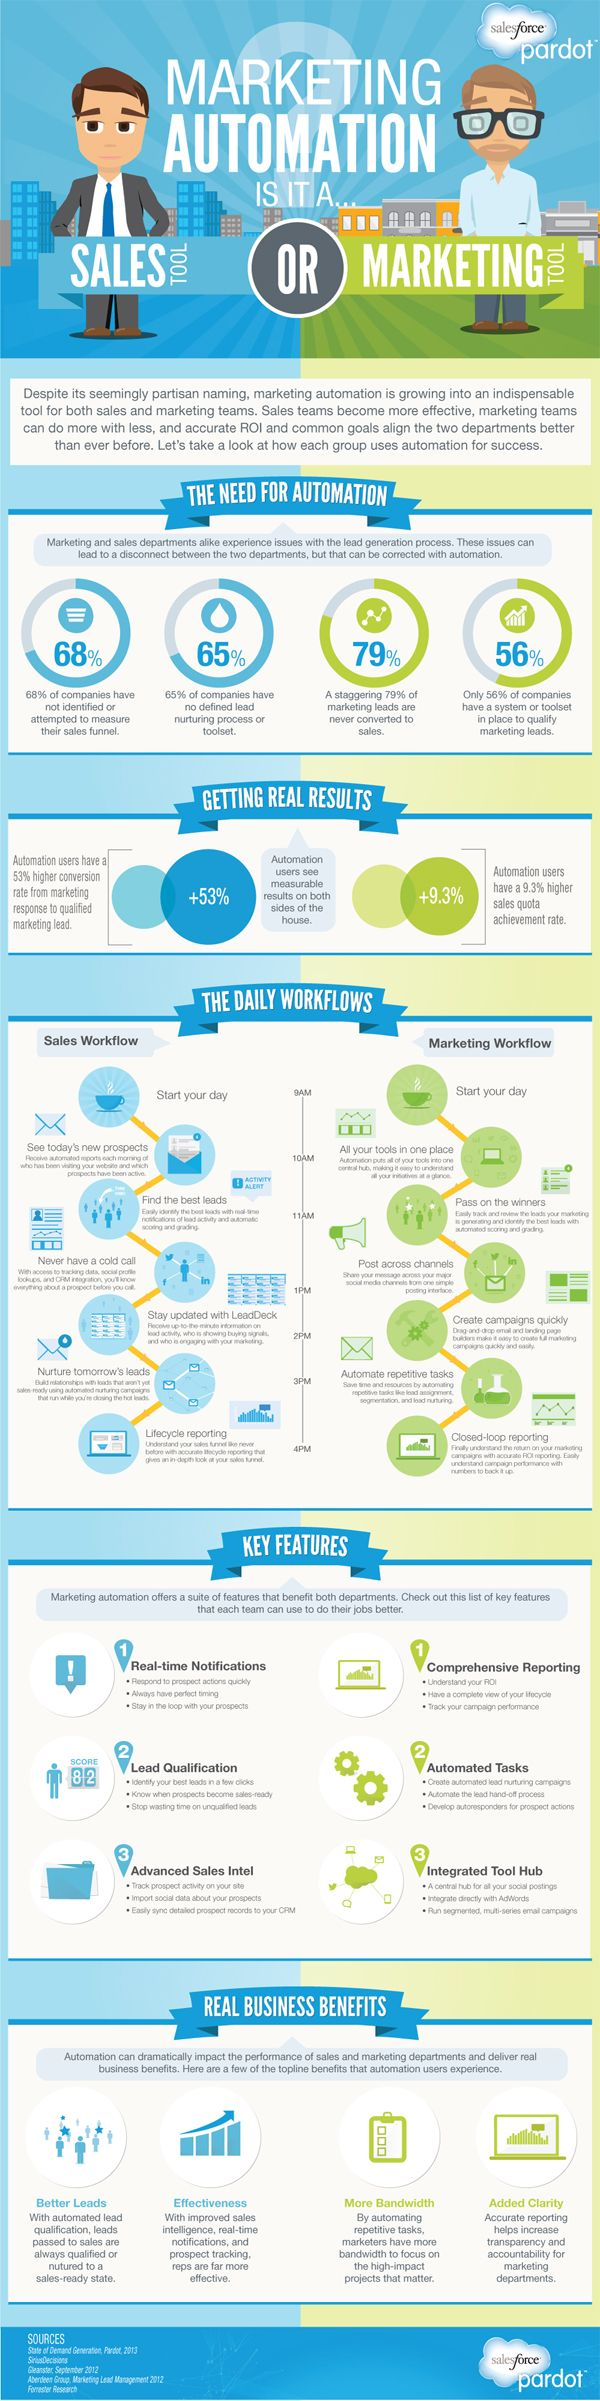 How Marketing Automation Works - iNFOGRAPHiCs MANiA